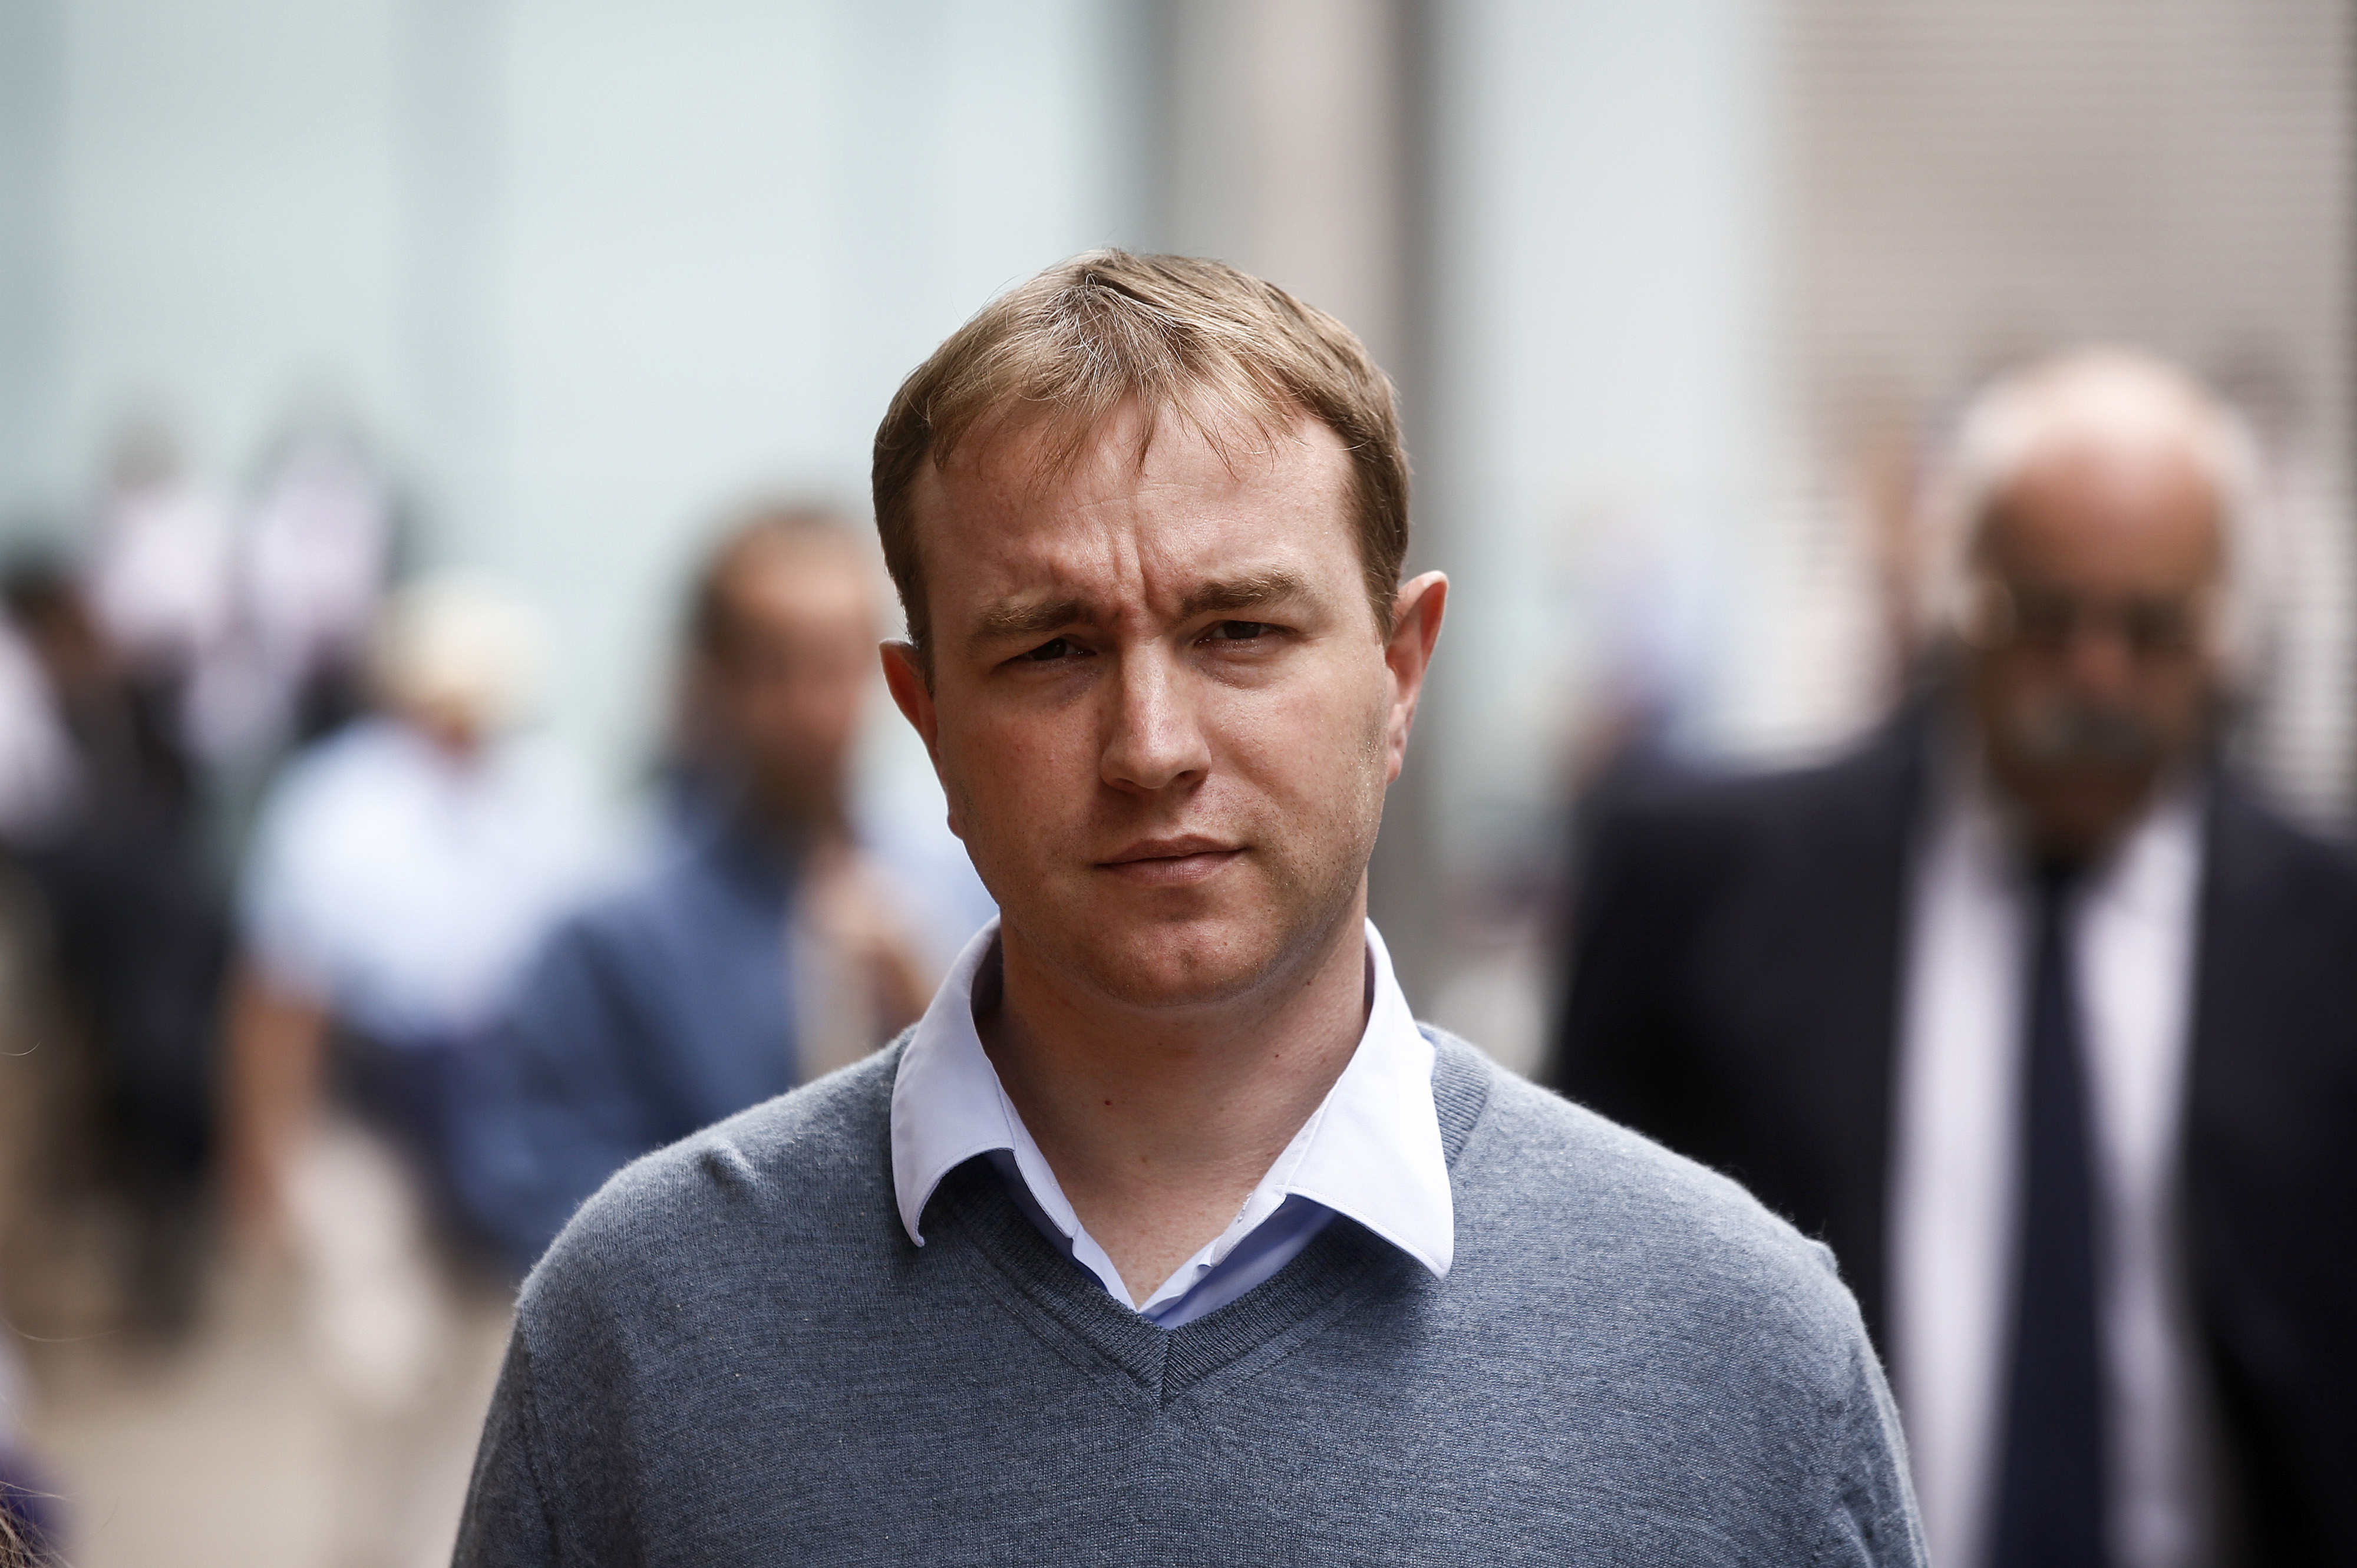 Thomas 'Tom' Hayes, a former trader at banks including UBS Group AG and Citigroup Inc., leaves for lunch during for his trial at Southwark Crown Court in London, U.K., on Monday, Aug. 03, 2015. Hayes, the first person to stand trial for manipulating Libor, was found guilty of eight counts of conspiracy to rig the benchmark rate. Photographer: Simon Dawson/Bloomberg *** Local Caption *** Tom Hayes